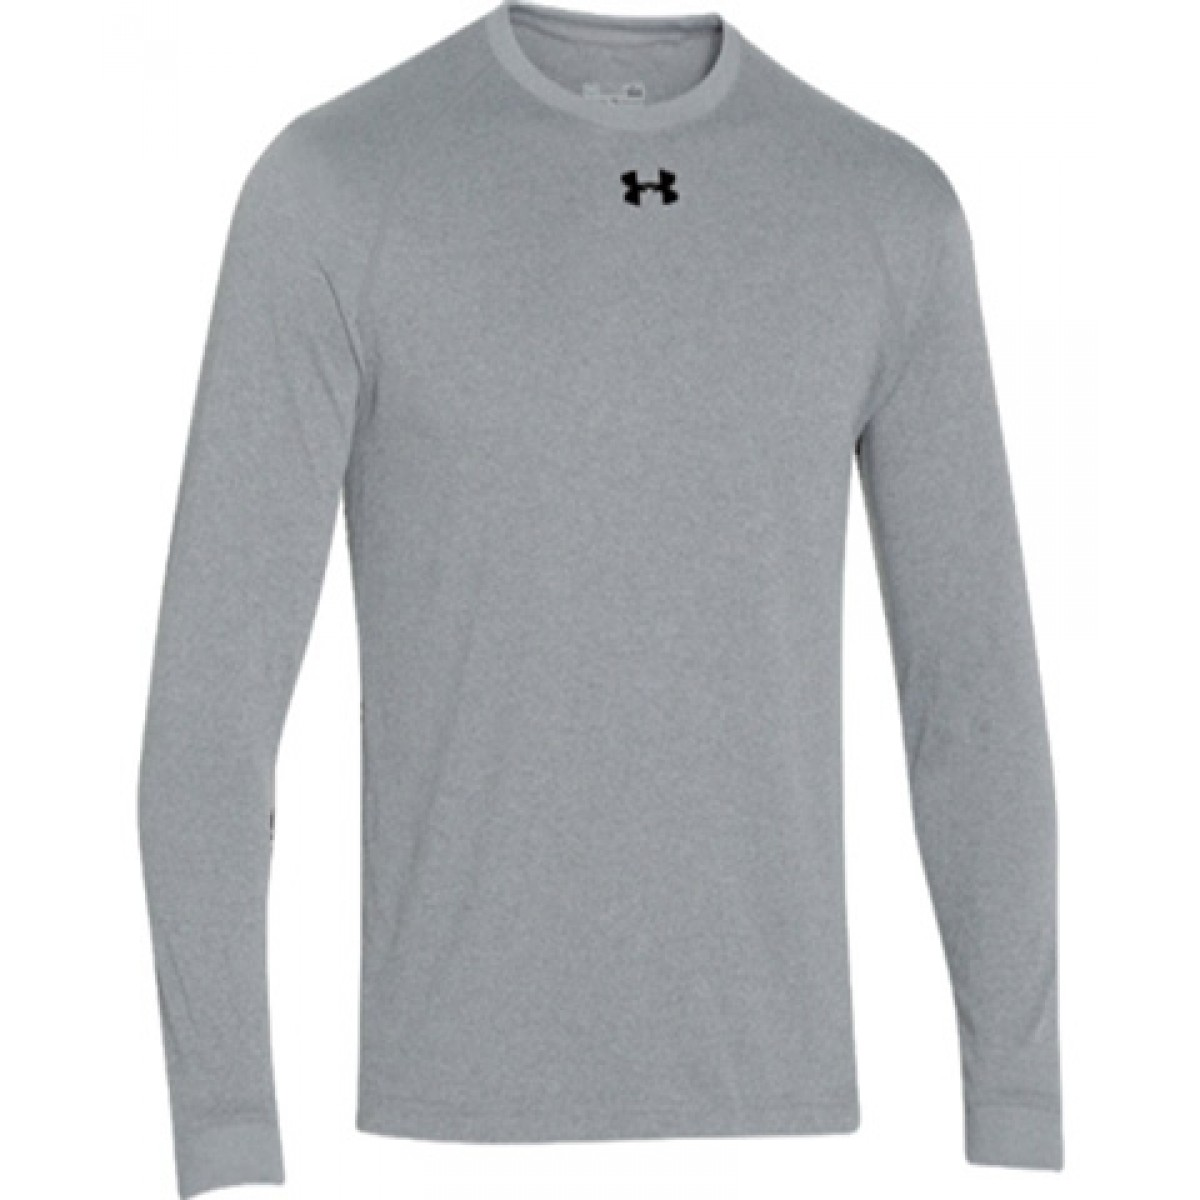 Gray Under Armor Long Sleeve